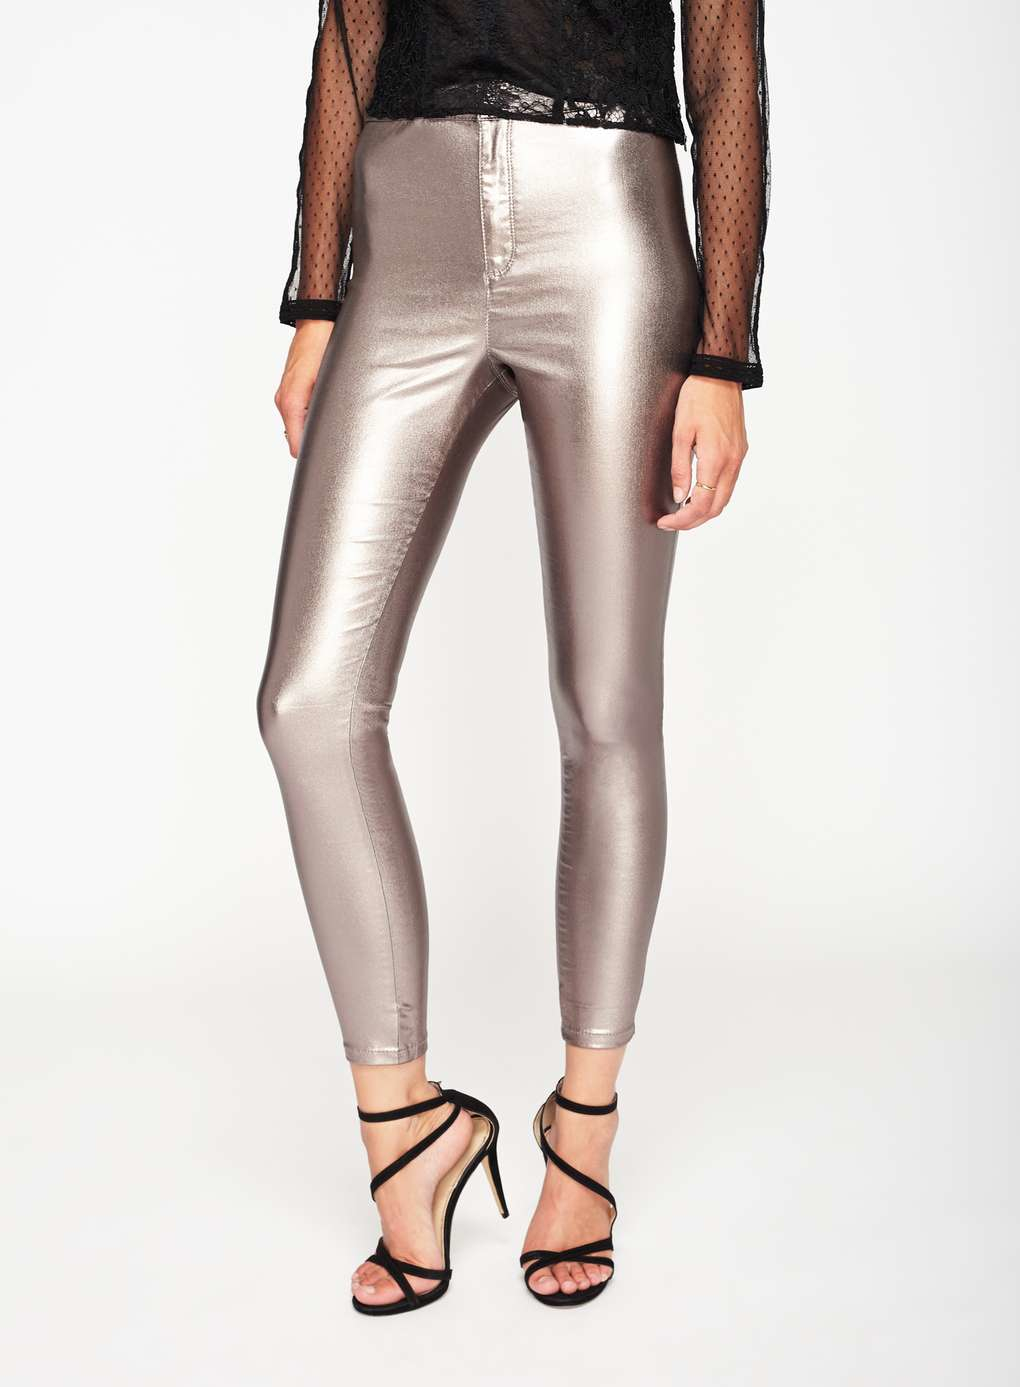 Silver Colored Jeans - Xtellar Jeans